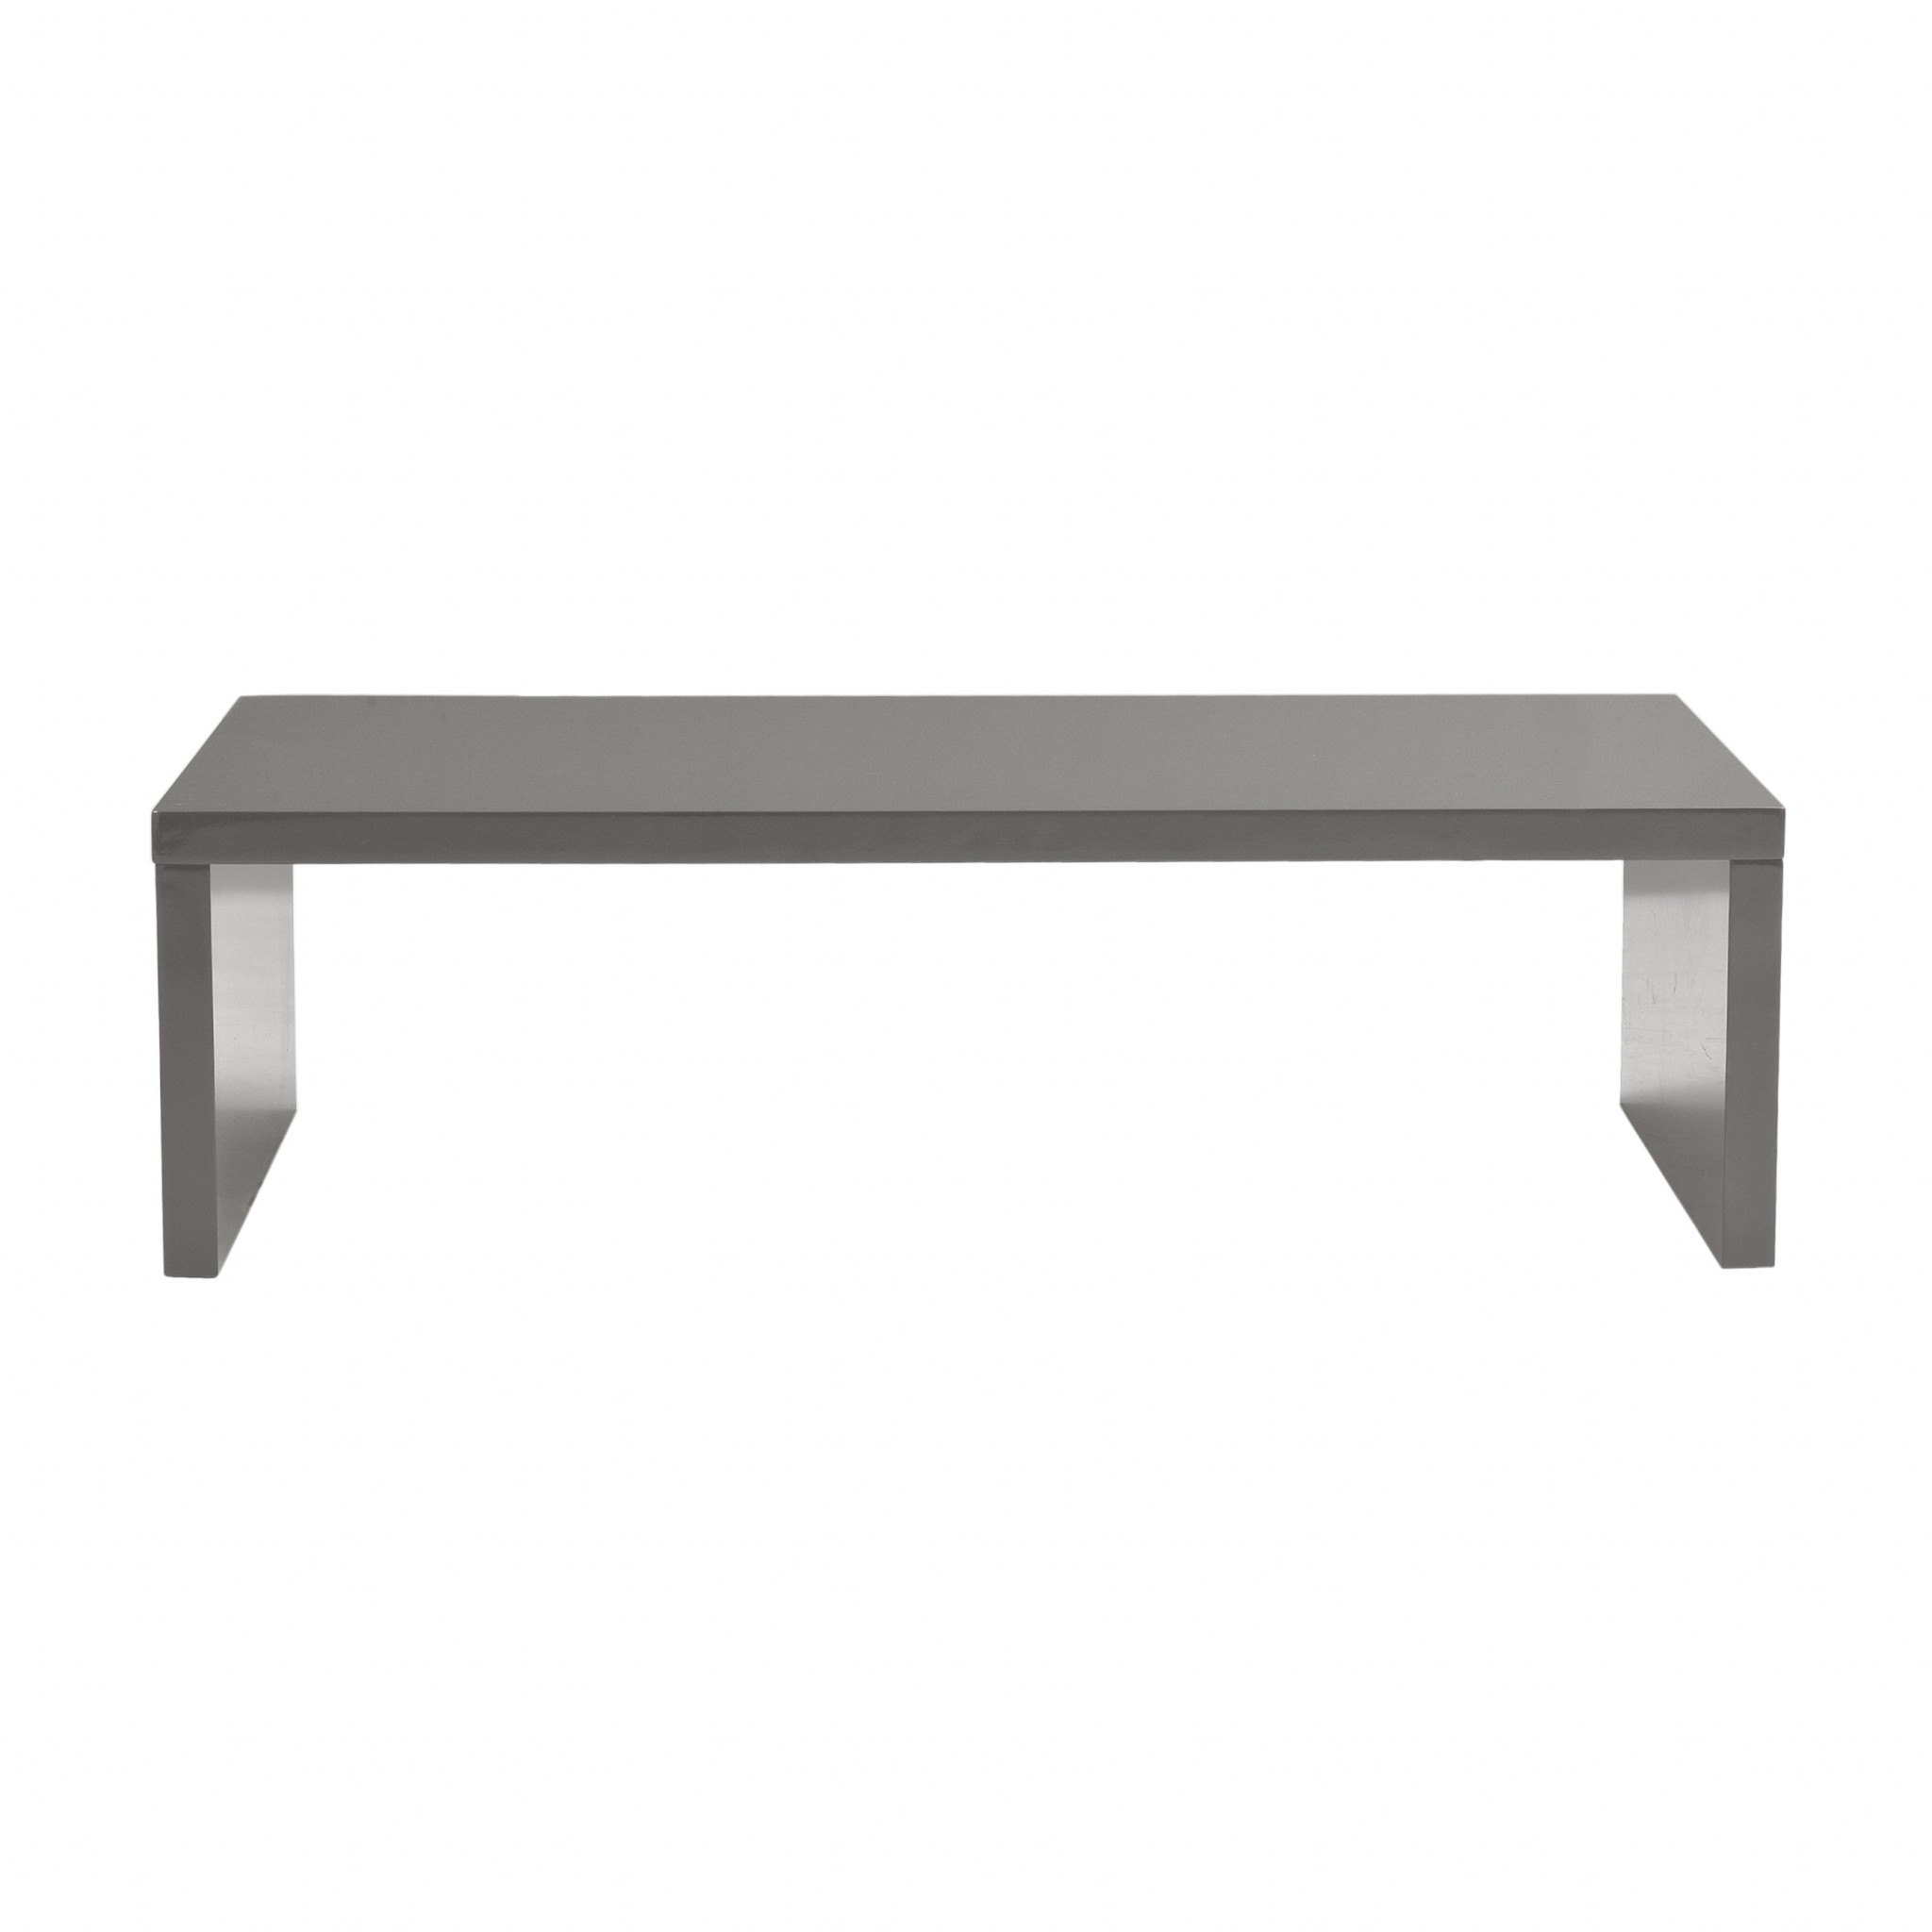 "47.25"" X 23.63"" X 13.98"" High Gloss Gray Lacquered MDF Rectangle Coffee Table"